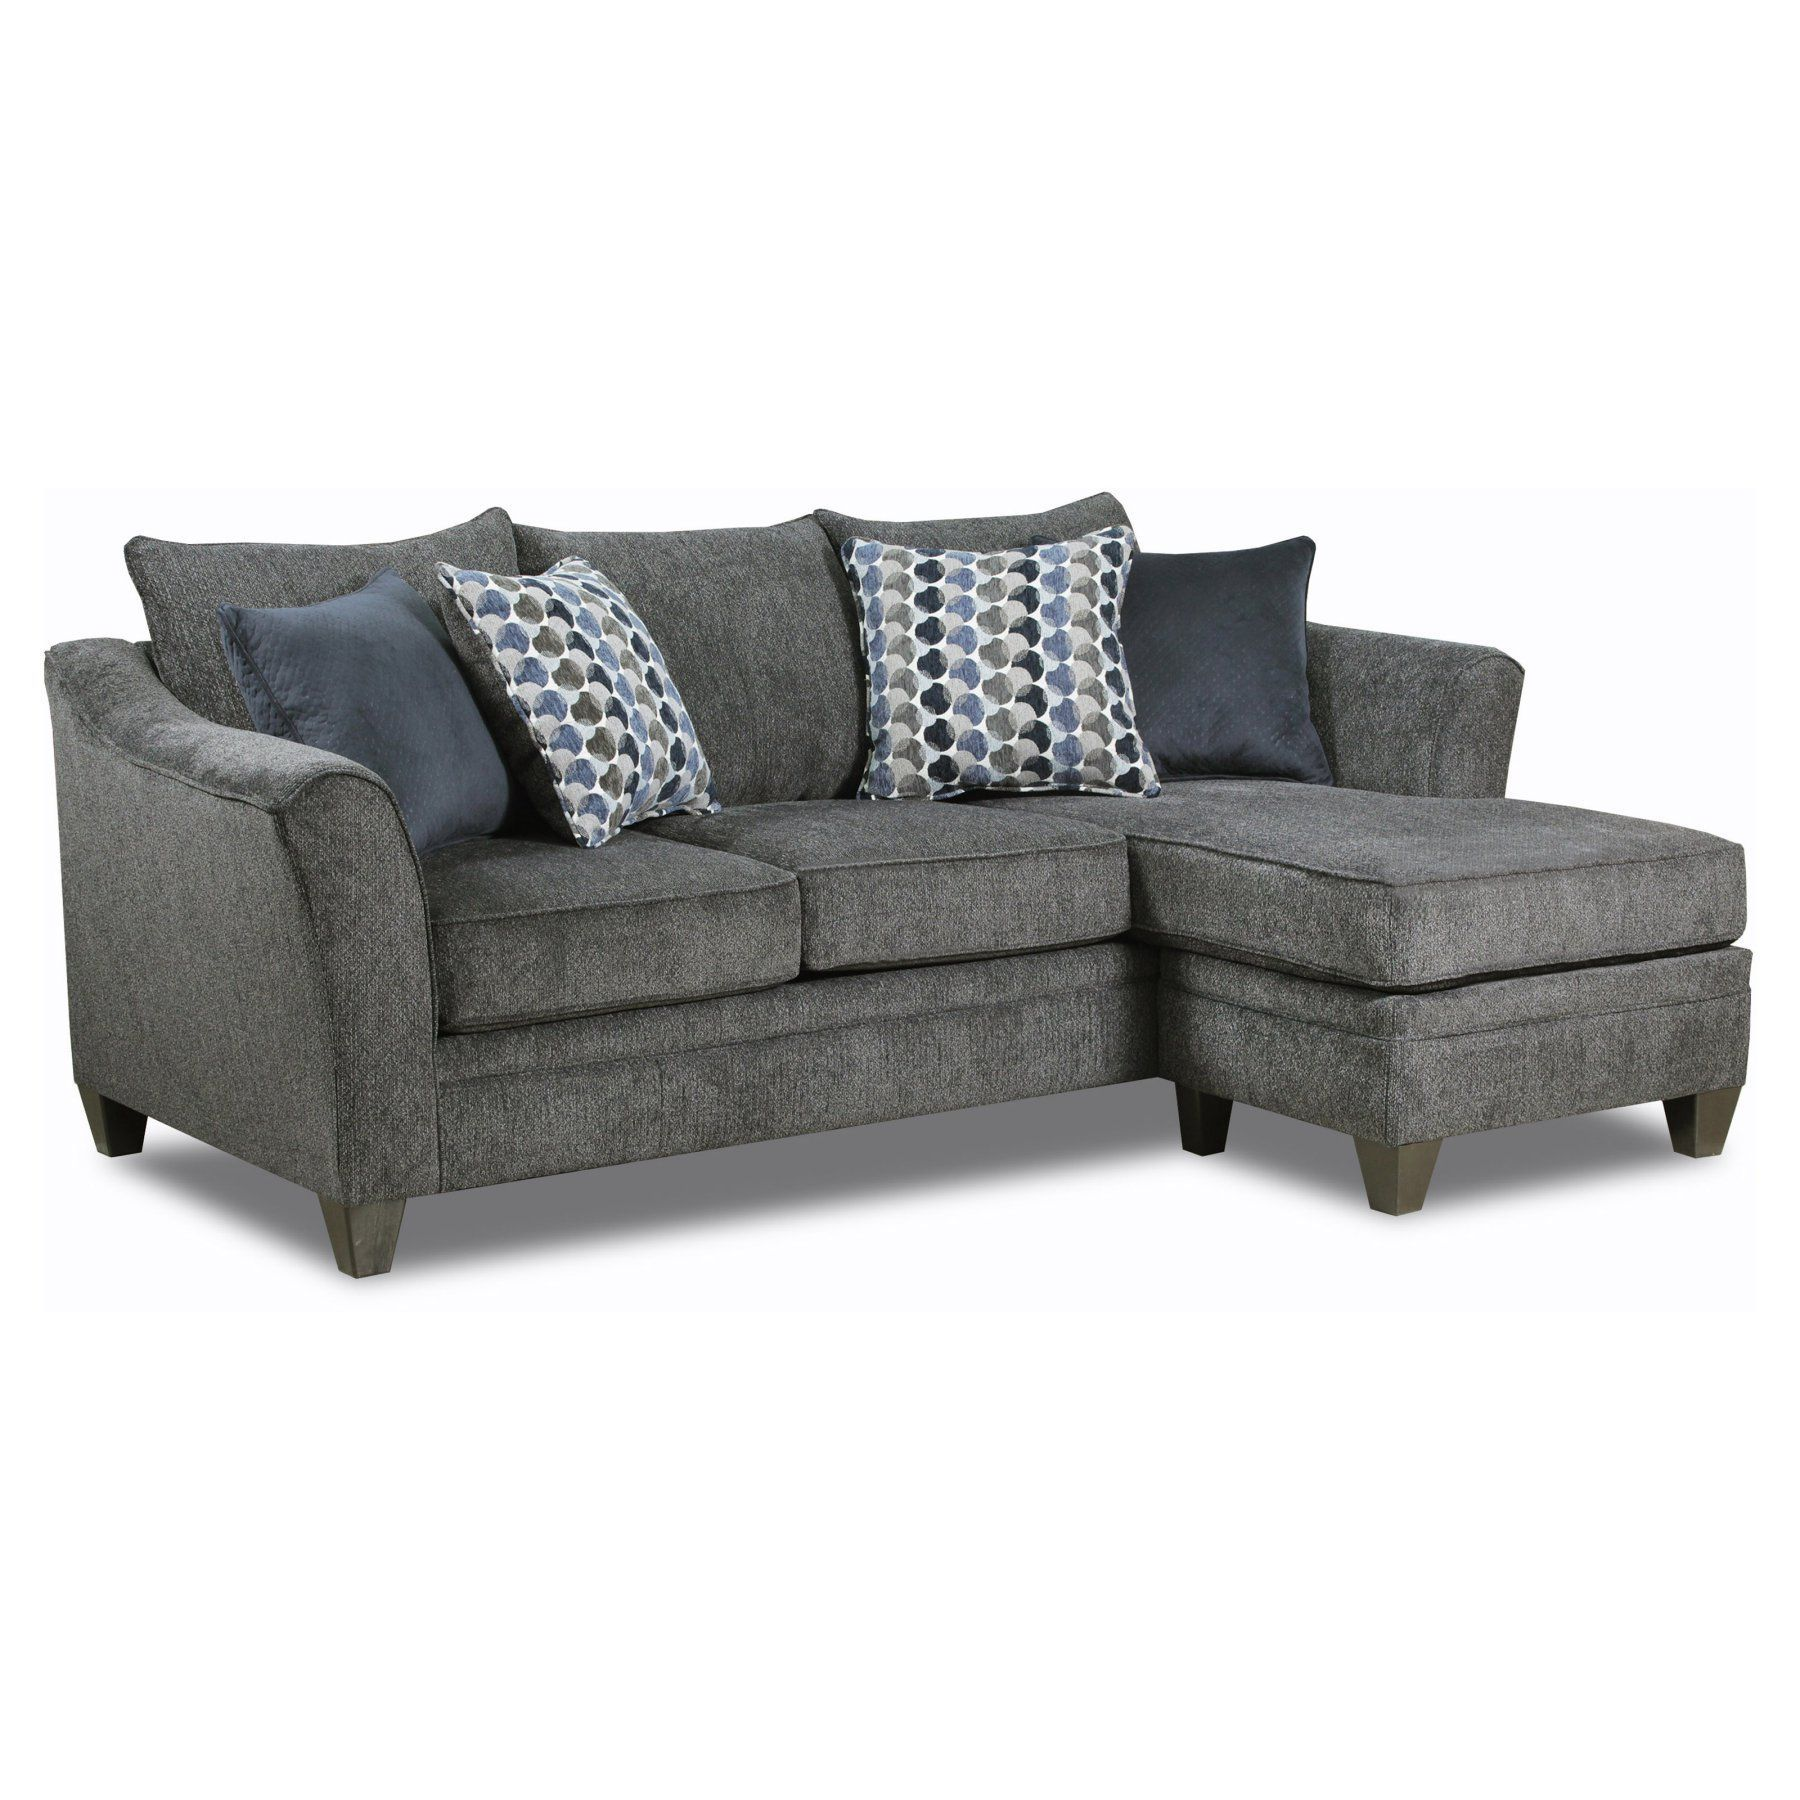 Simmons Upholstery Albany Sofa With Chaise 6485 03sc Albany